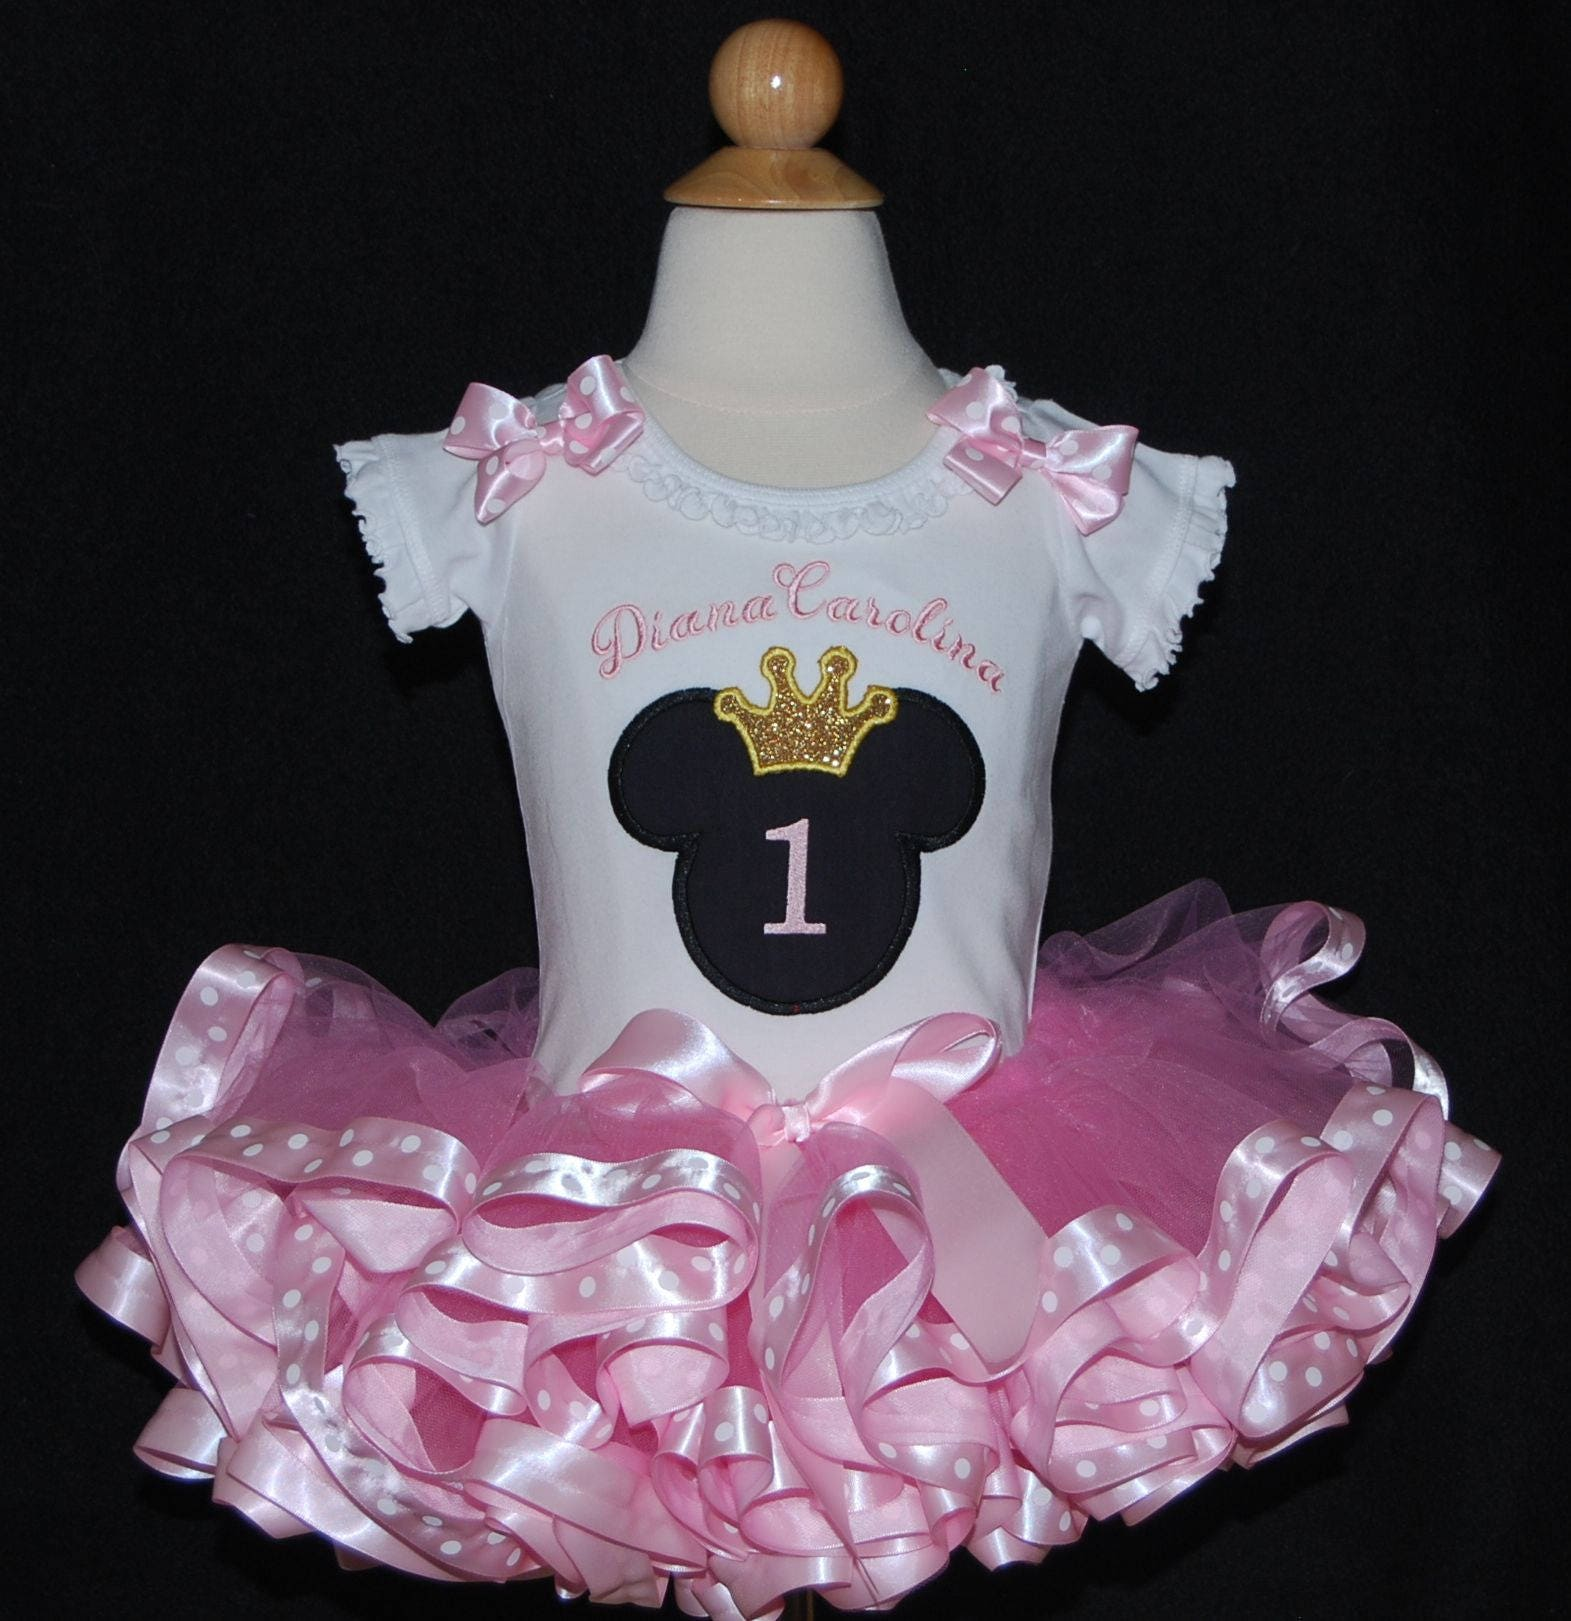 19aa3cdfb 1st birthday girl outfit, first birthday outfit girl, baby 1st birthday  outfit, 1st